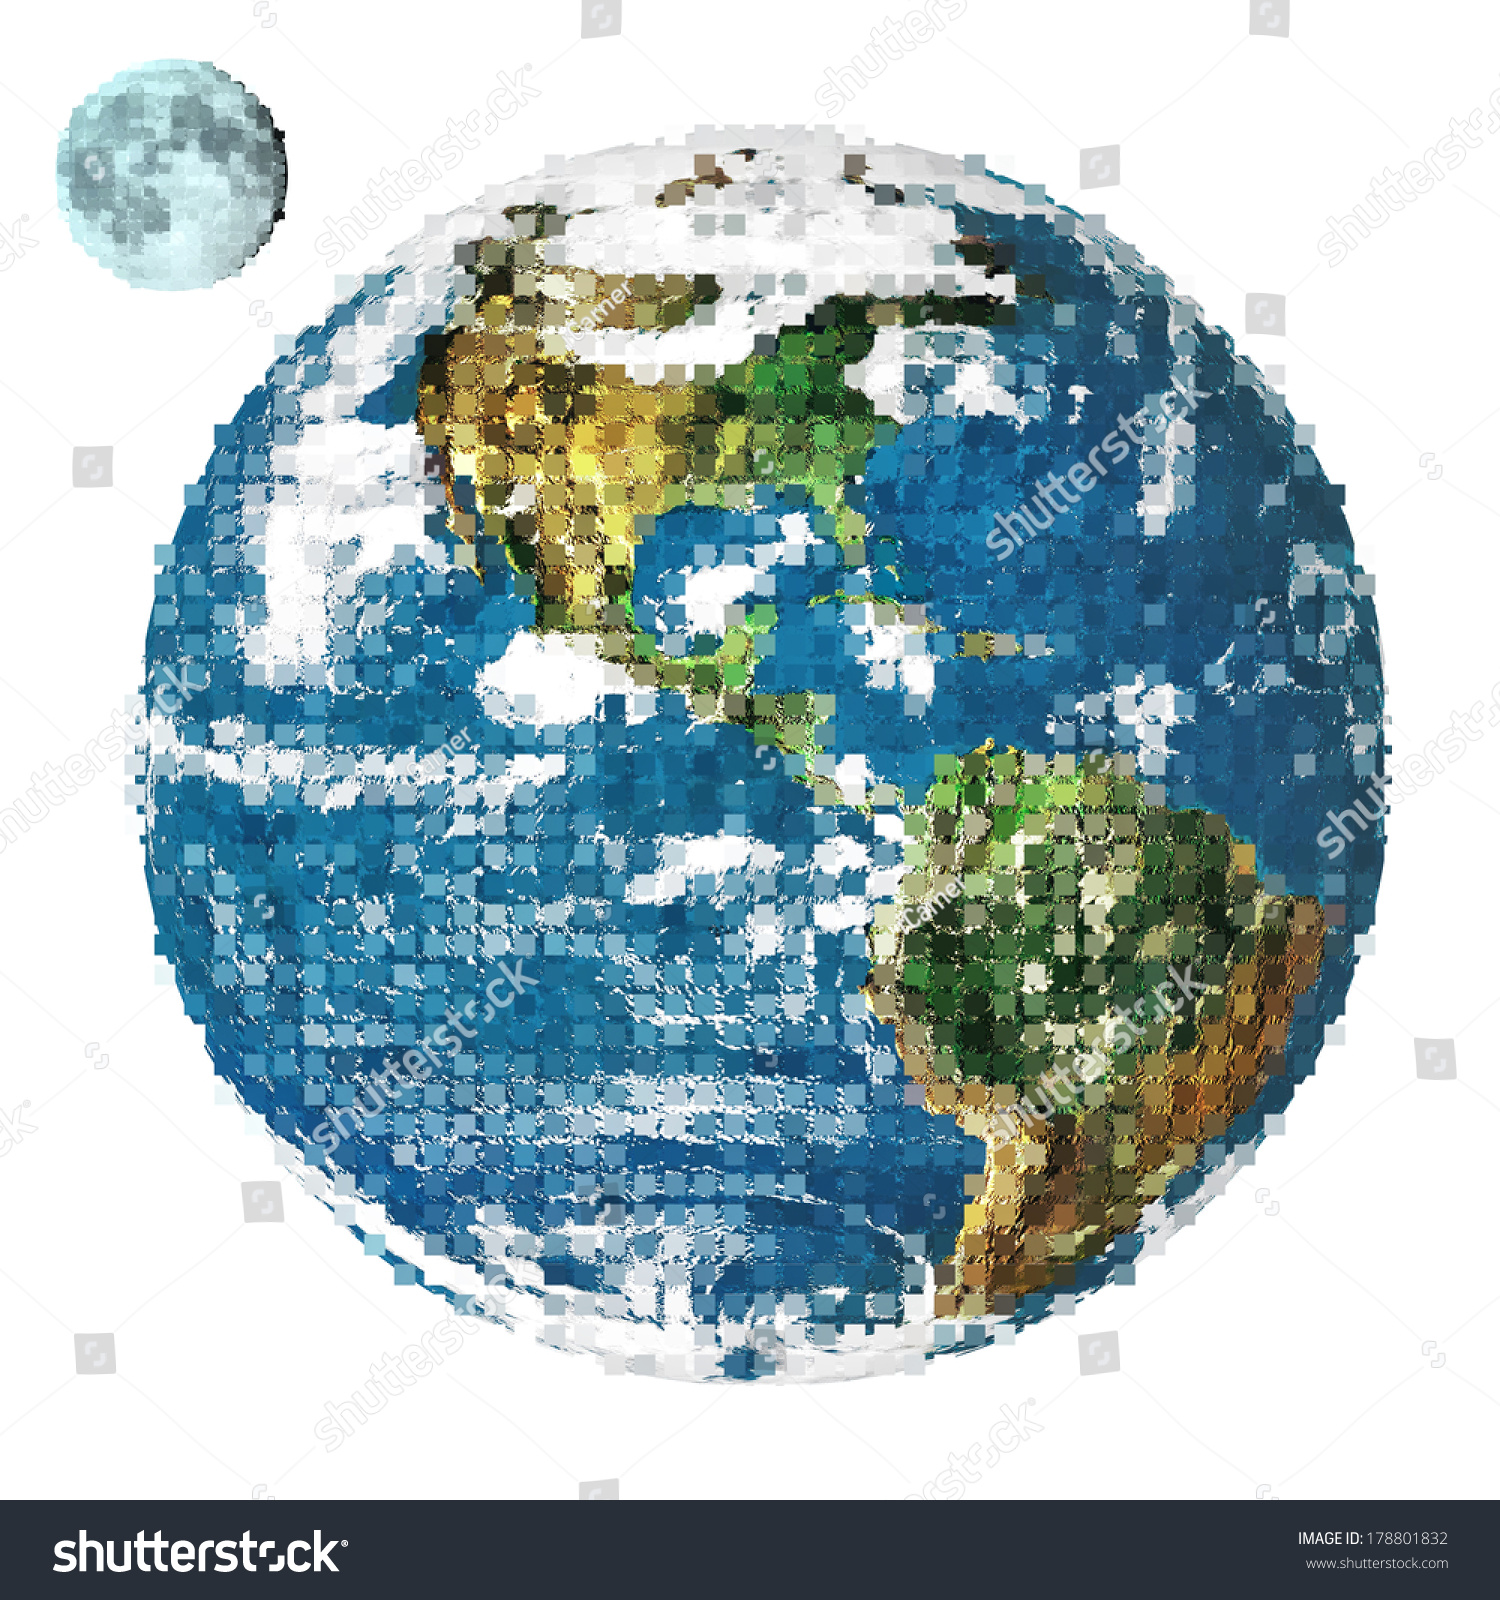 Stylized image earth lunar moon created stock photo for Why was nasa created